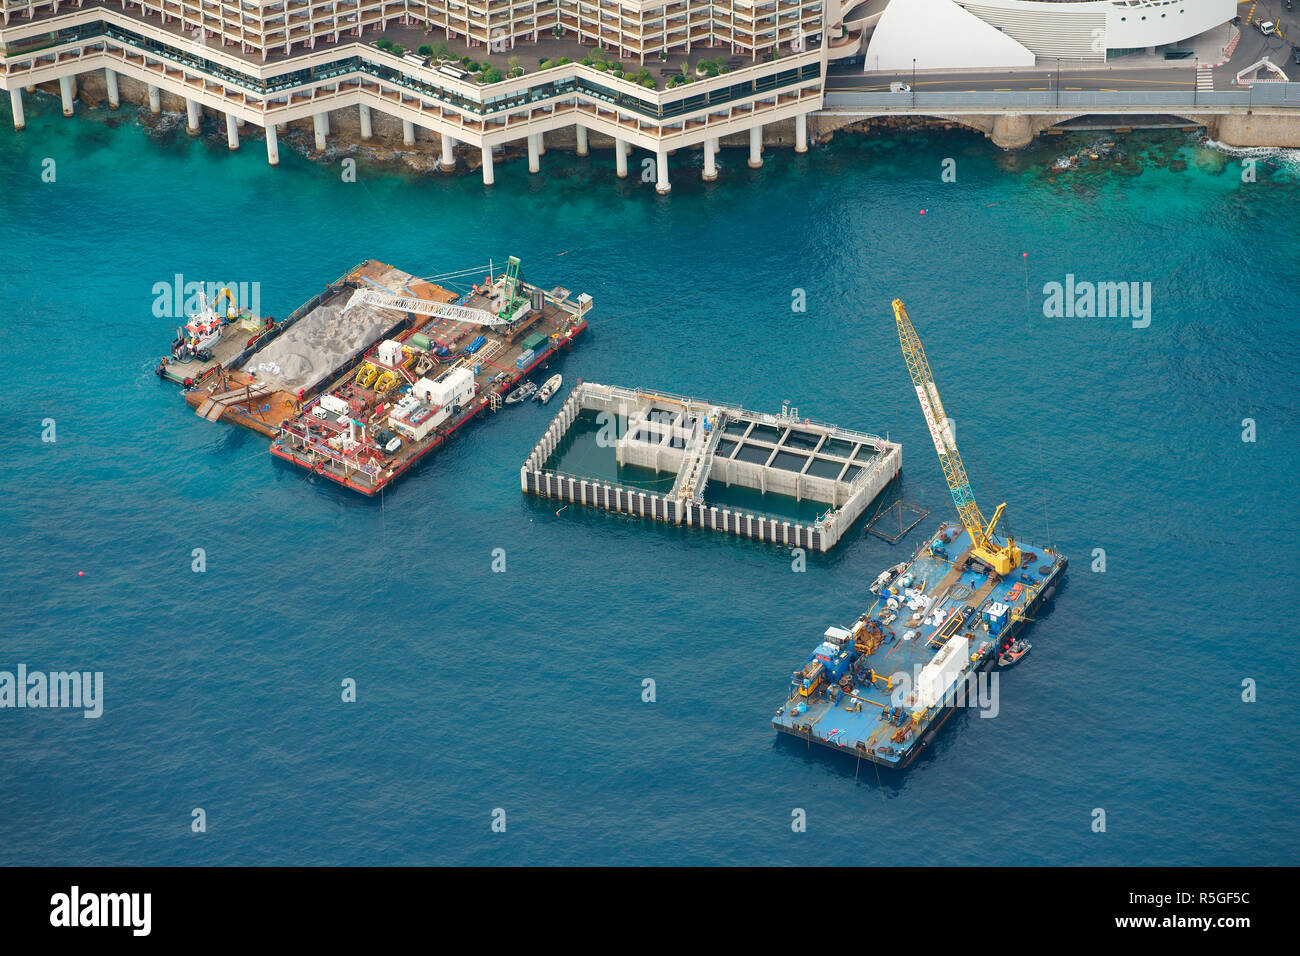 FLOATING CONCRETE CAISSON TO BE USED FOR A LARGE PROJECT OF LAND EXTENSION (aerial view). Principality of Monaco. - Stock Image